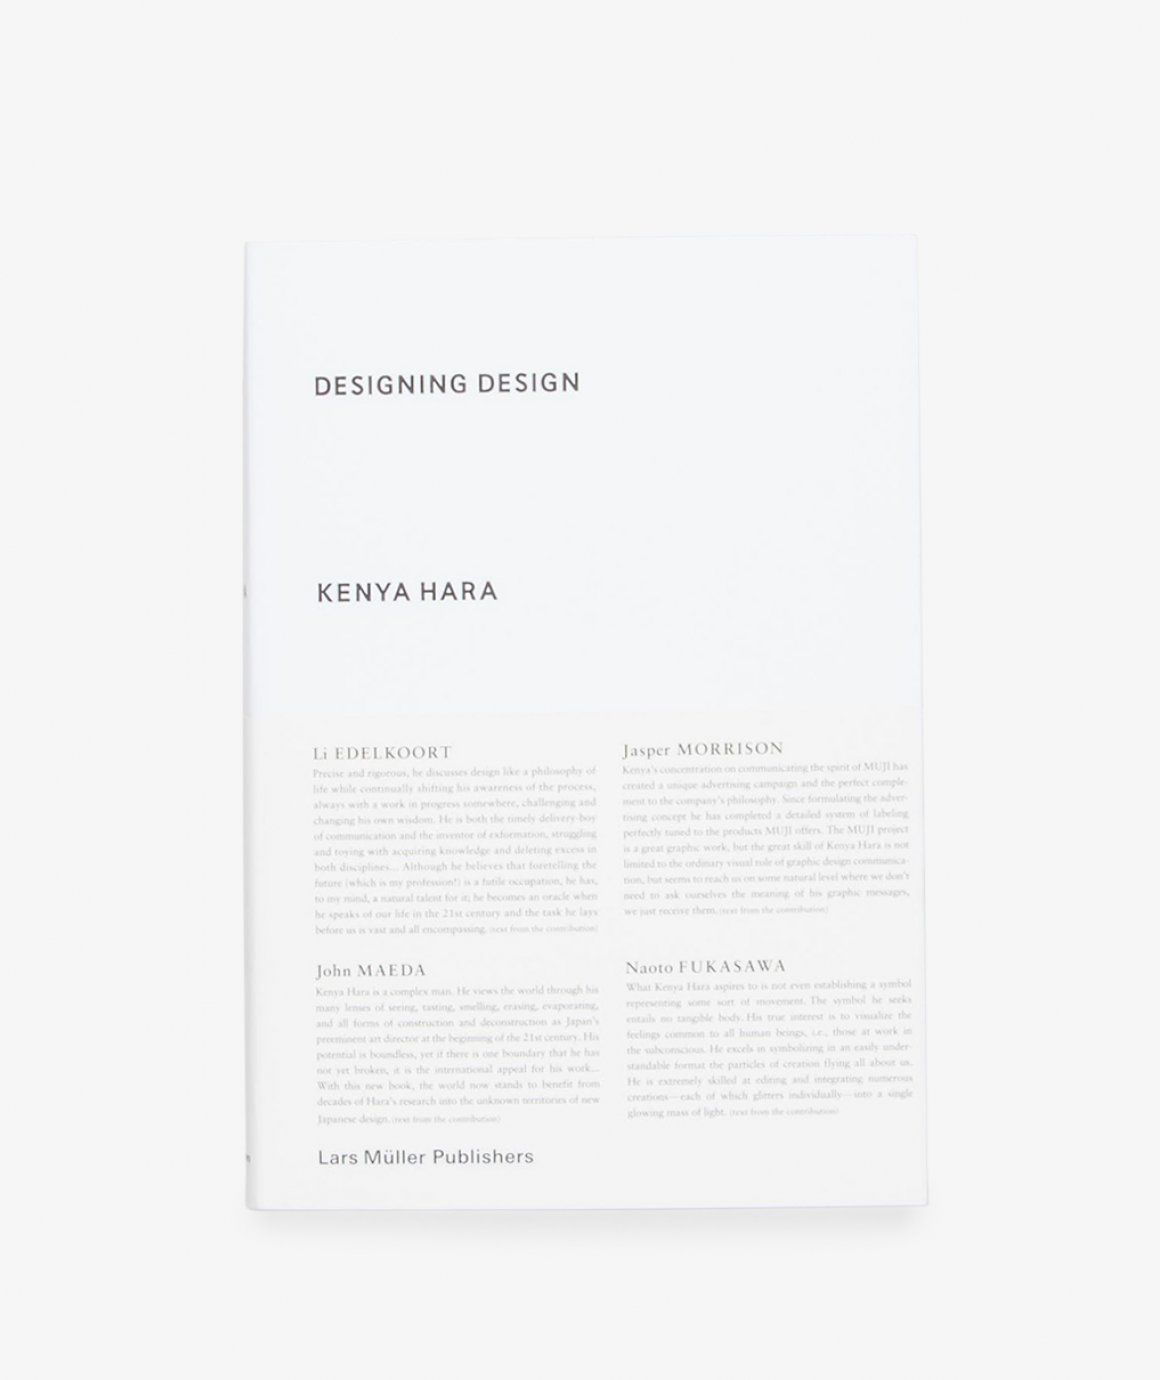 Designing design kenya hara great selection of books available at norse store home projects also hayden james douglas robertson haydenjdr on pinterest rh